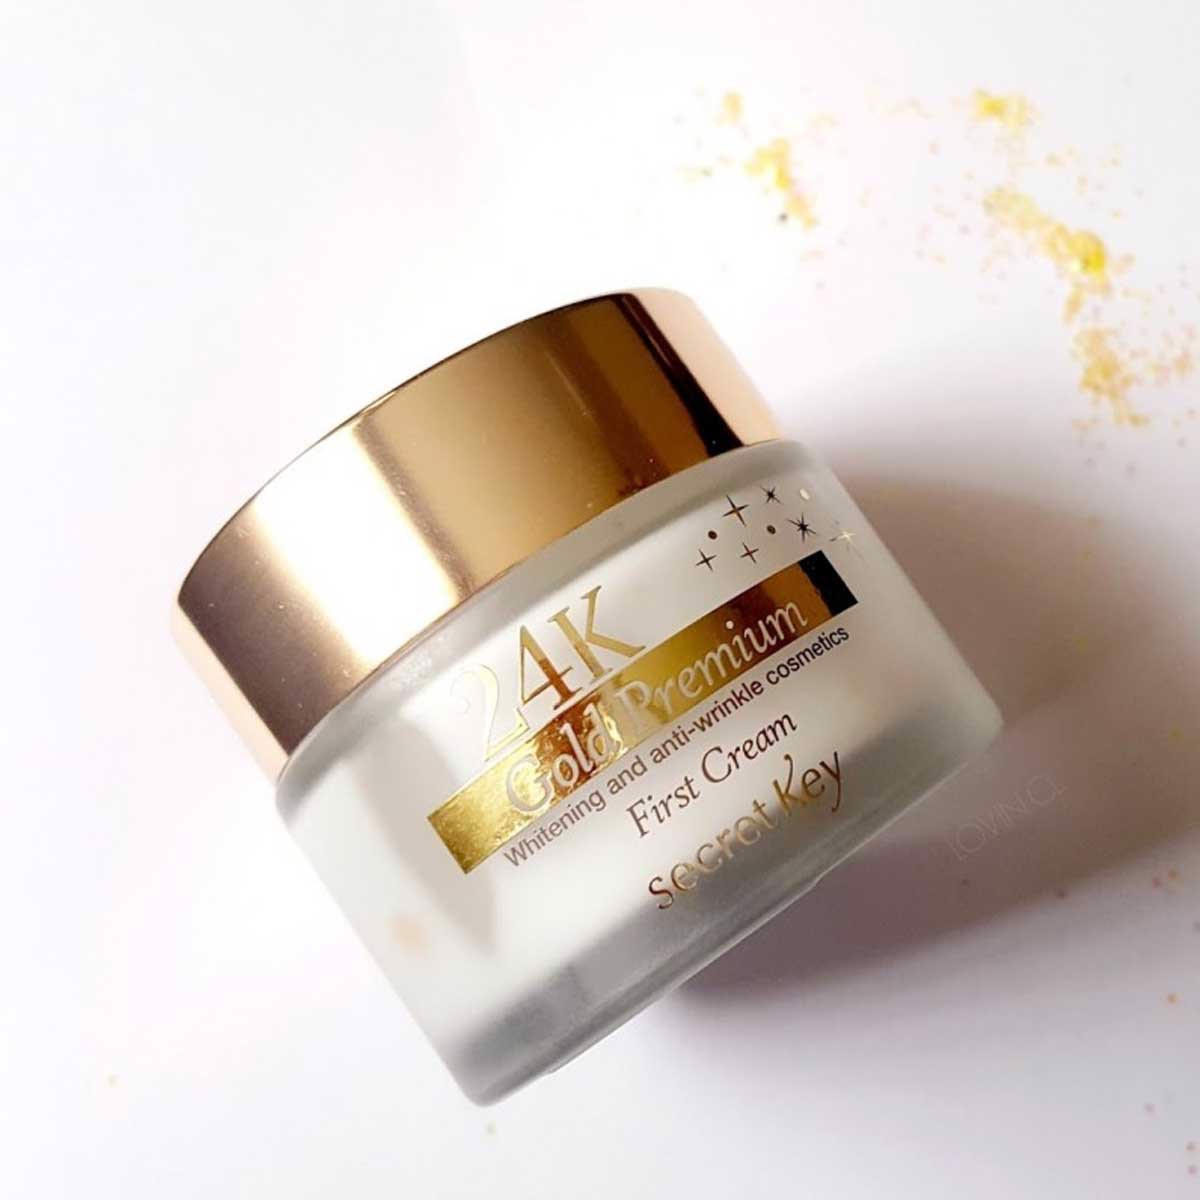 Sample Kem Dưỡng Da Secret Key 24K Gold Premium First Cream 1ml